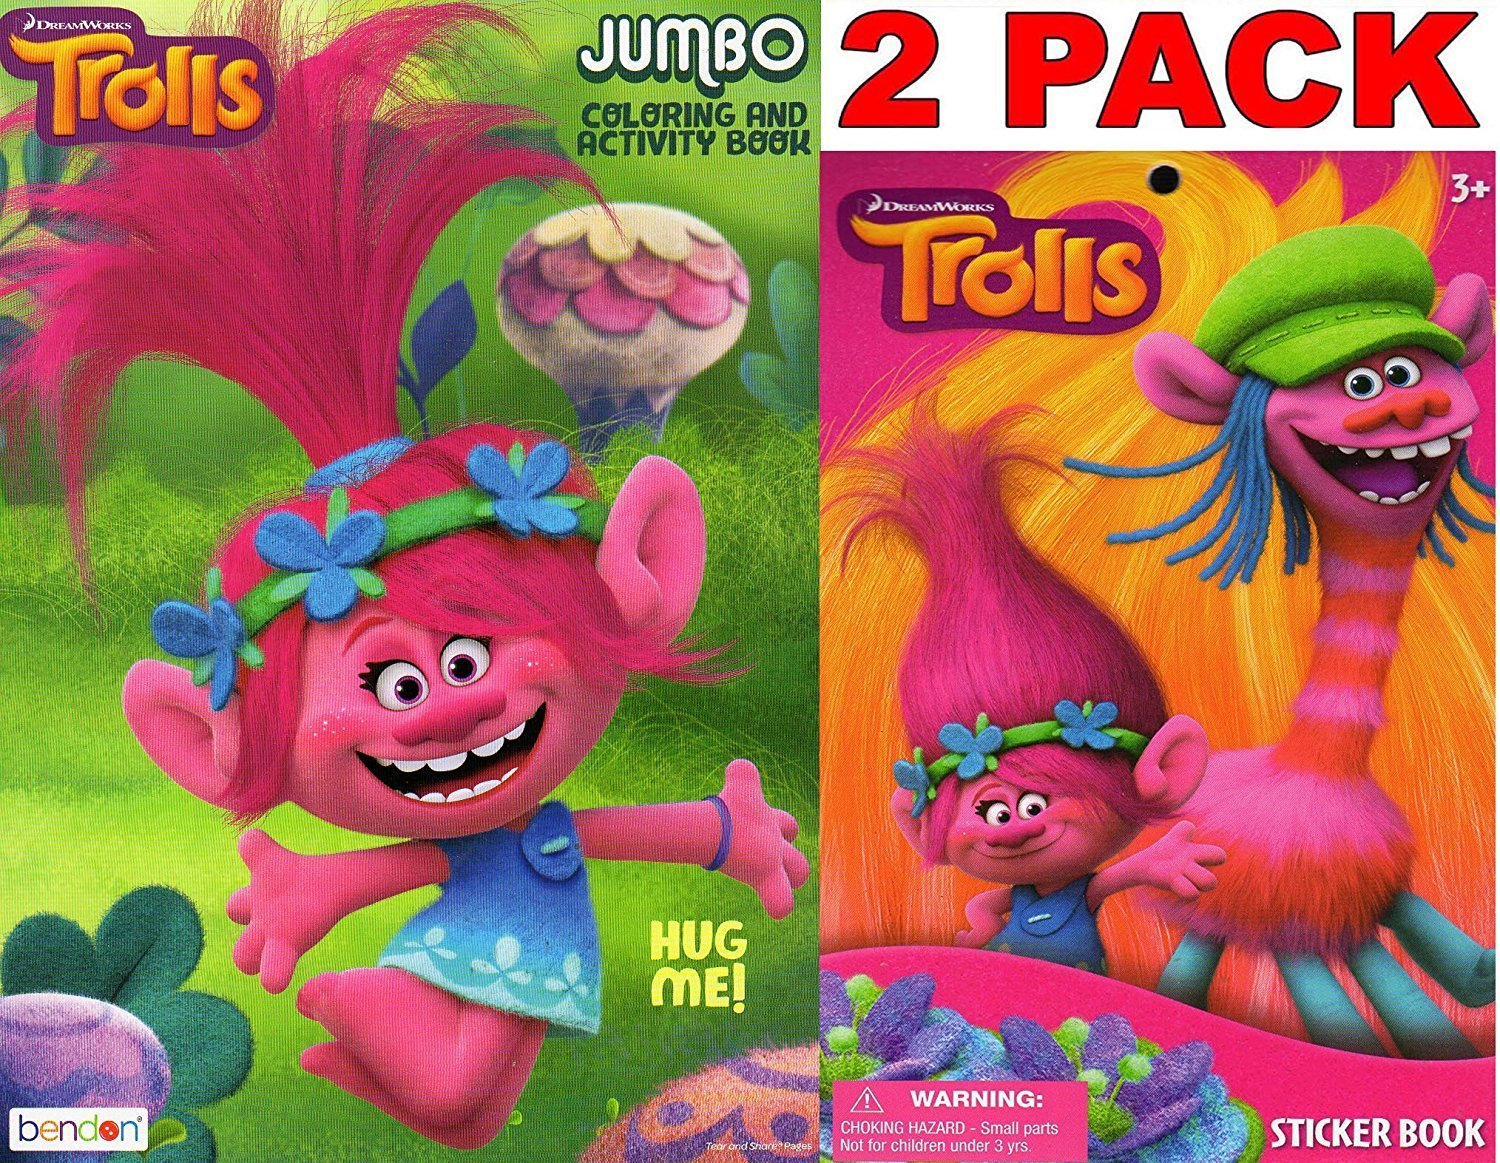 Dreamworks Trolls - Hug Me - Jumbo Coloring and Activity Book + Trolls Sticker Book (2 Pack)